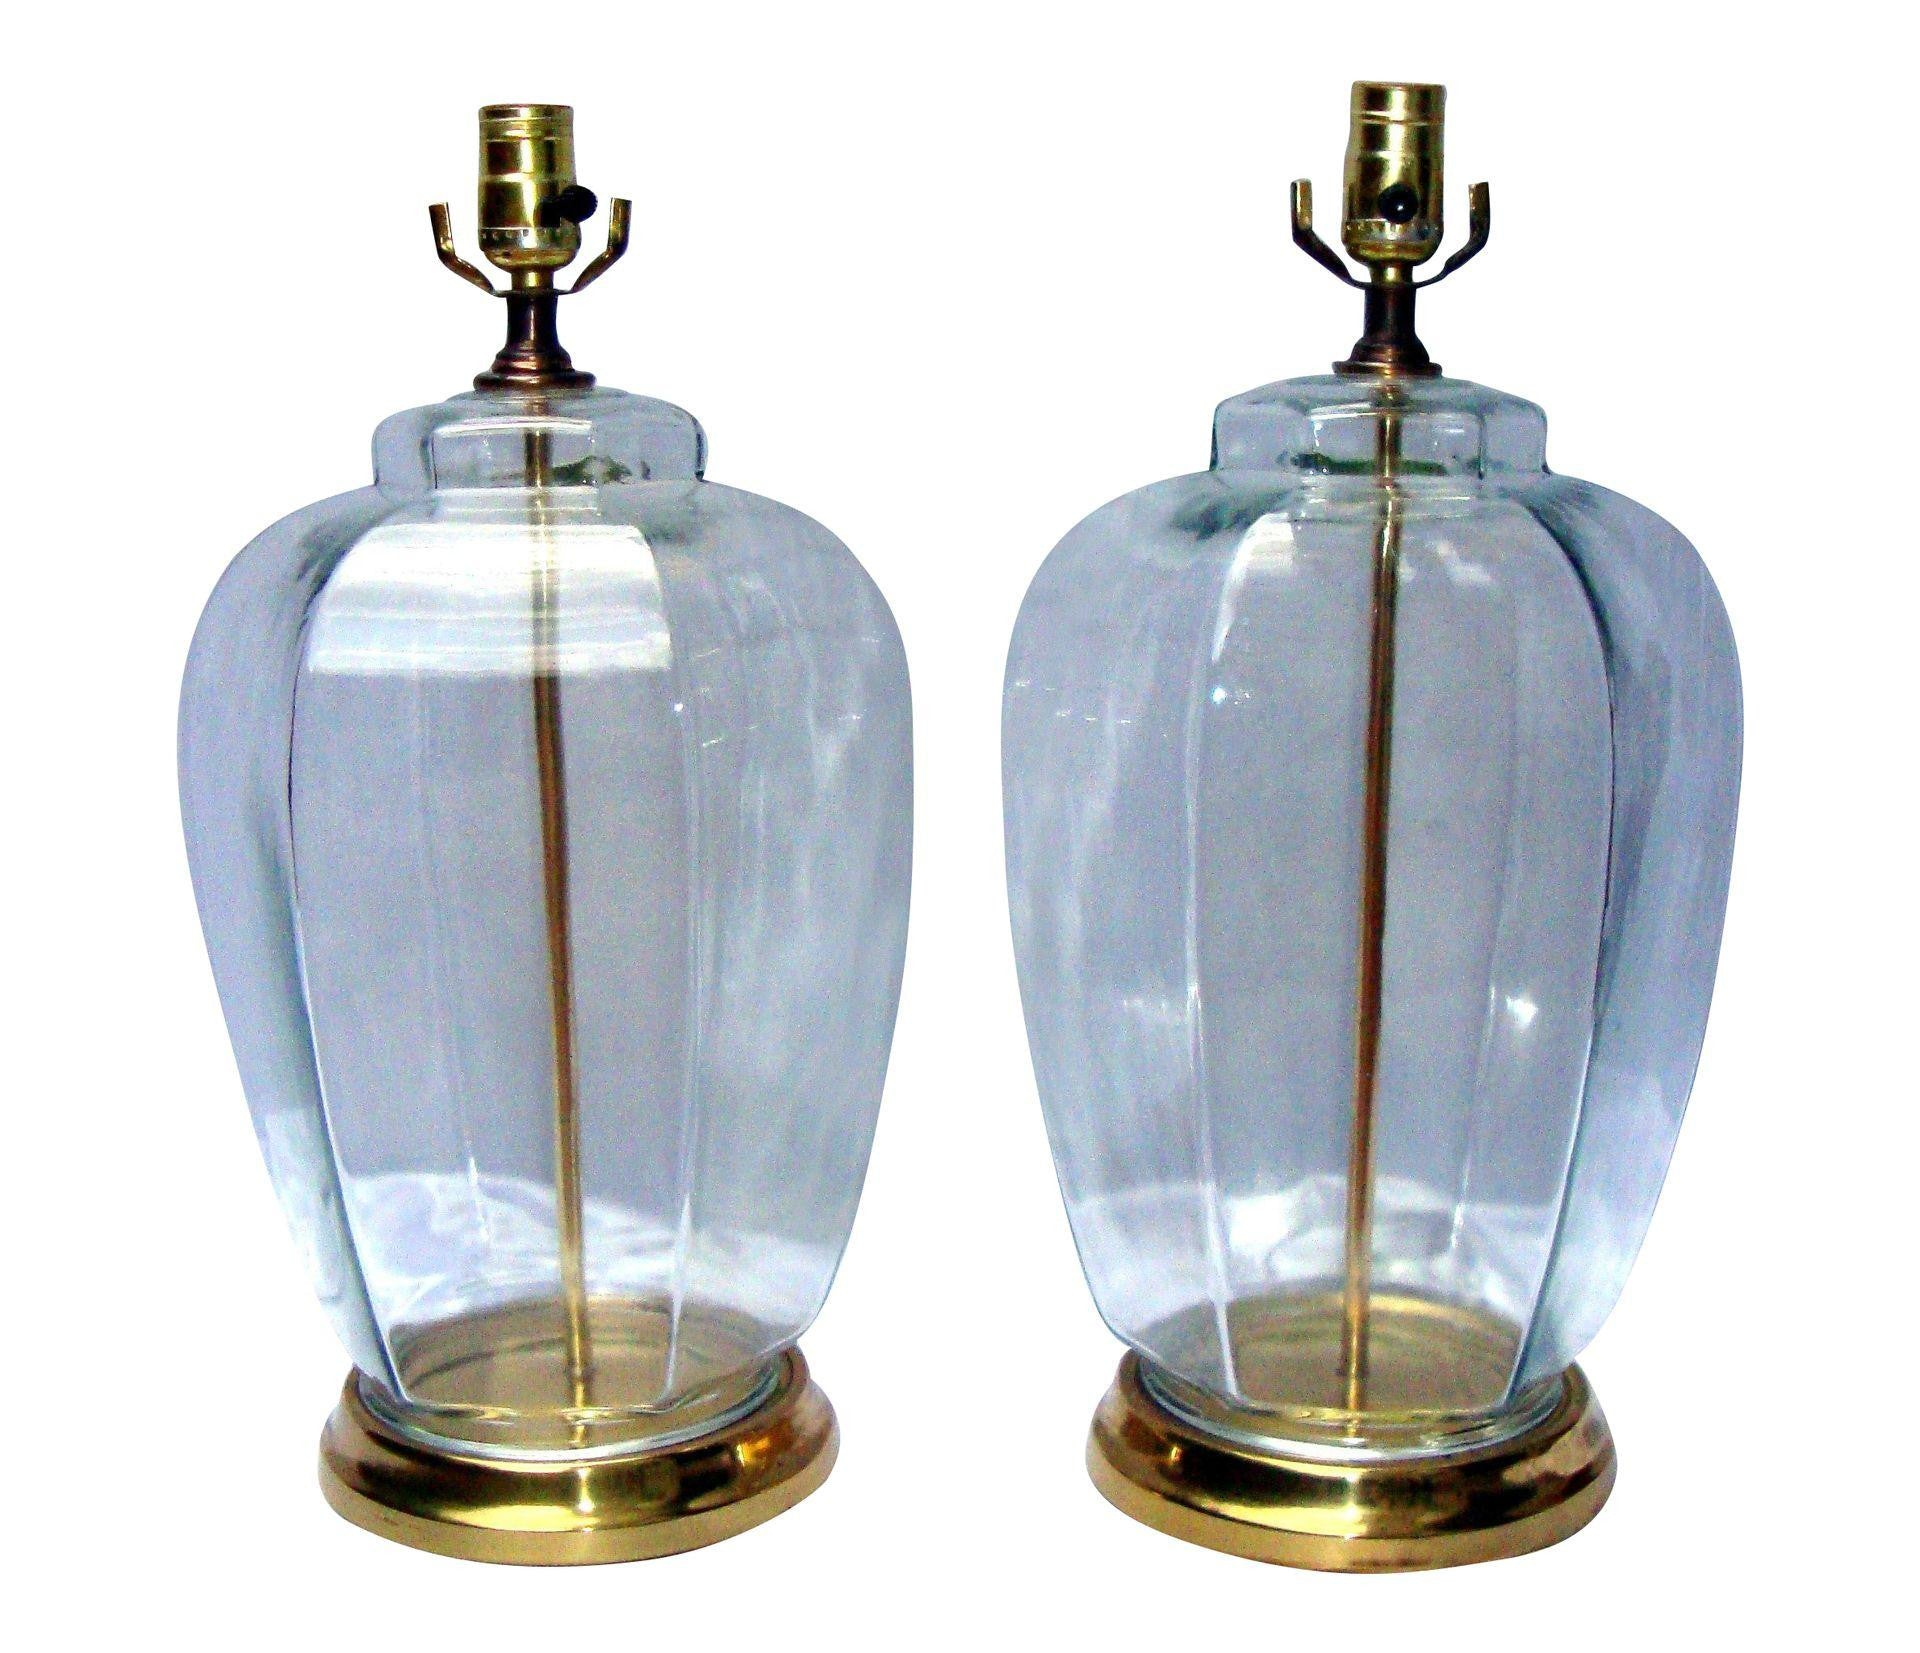 Vintage Modern Glam Glass Hexagon Lamps